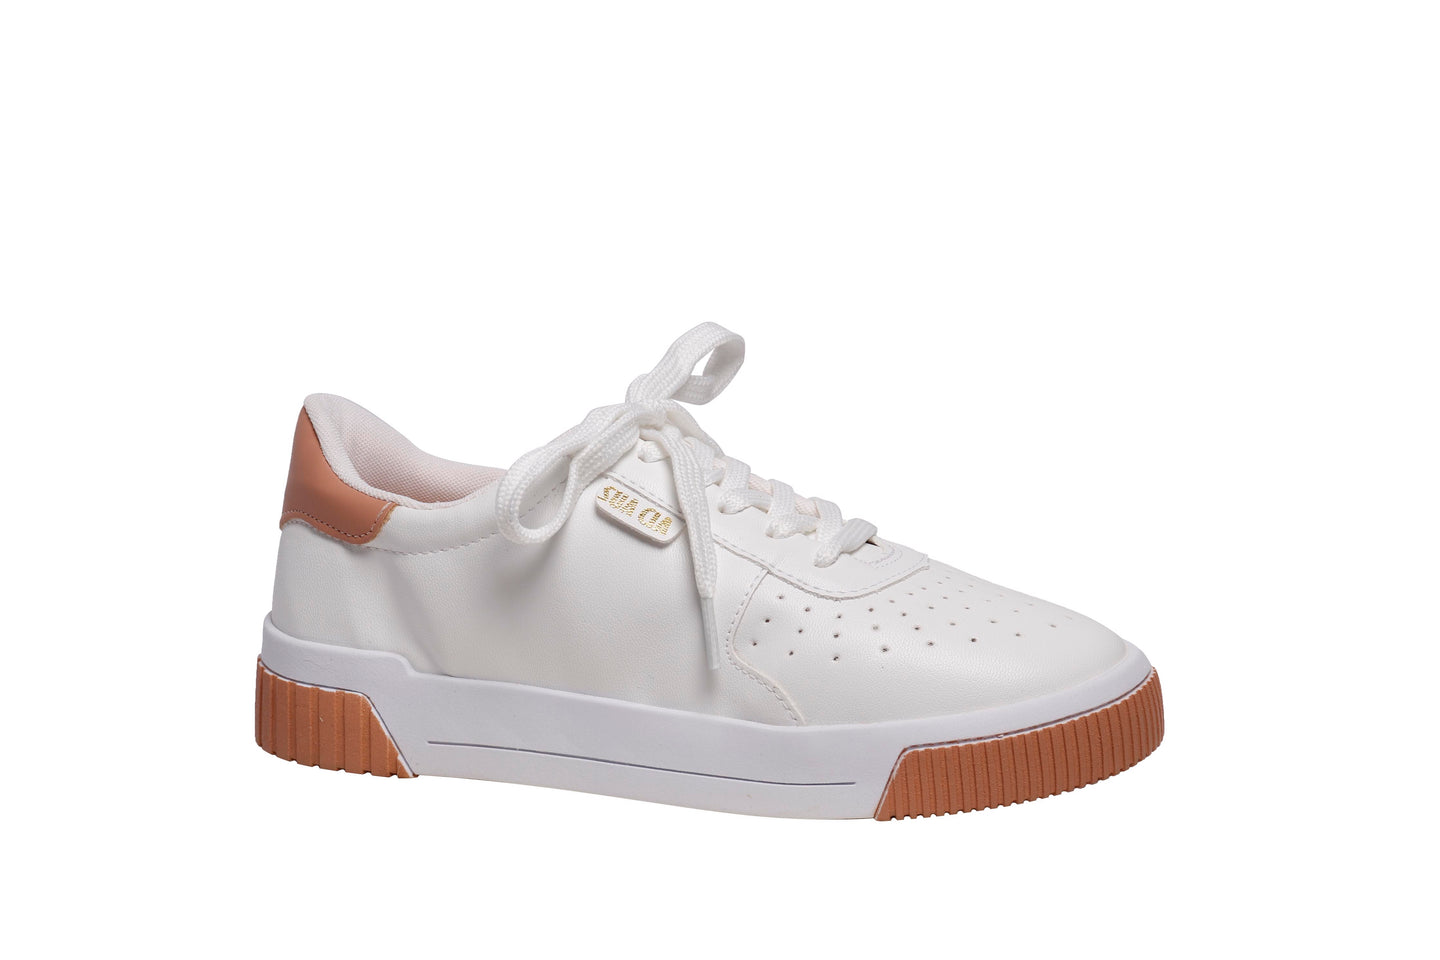 *NEW* White and Camel Napa Sneakers